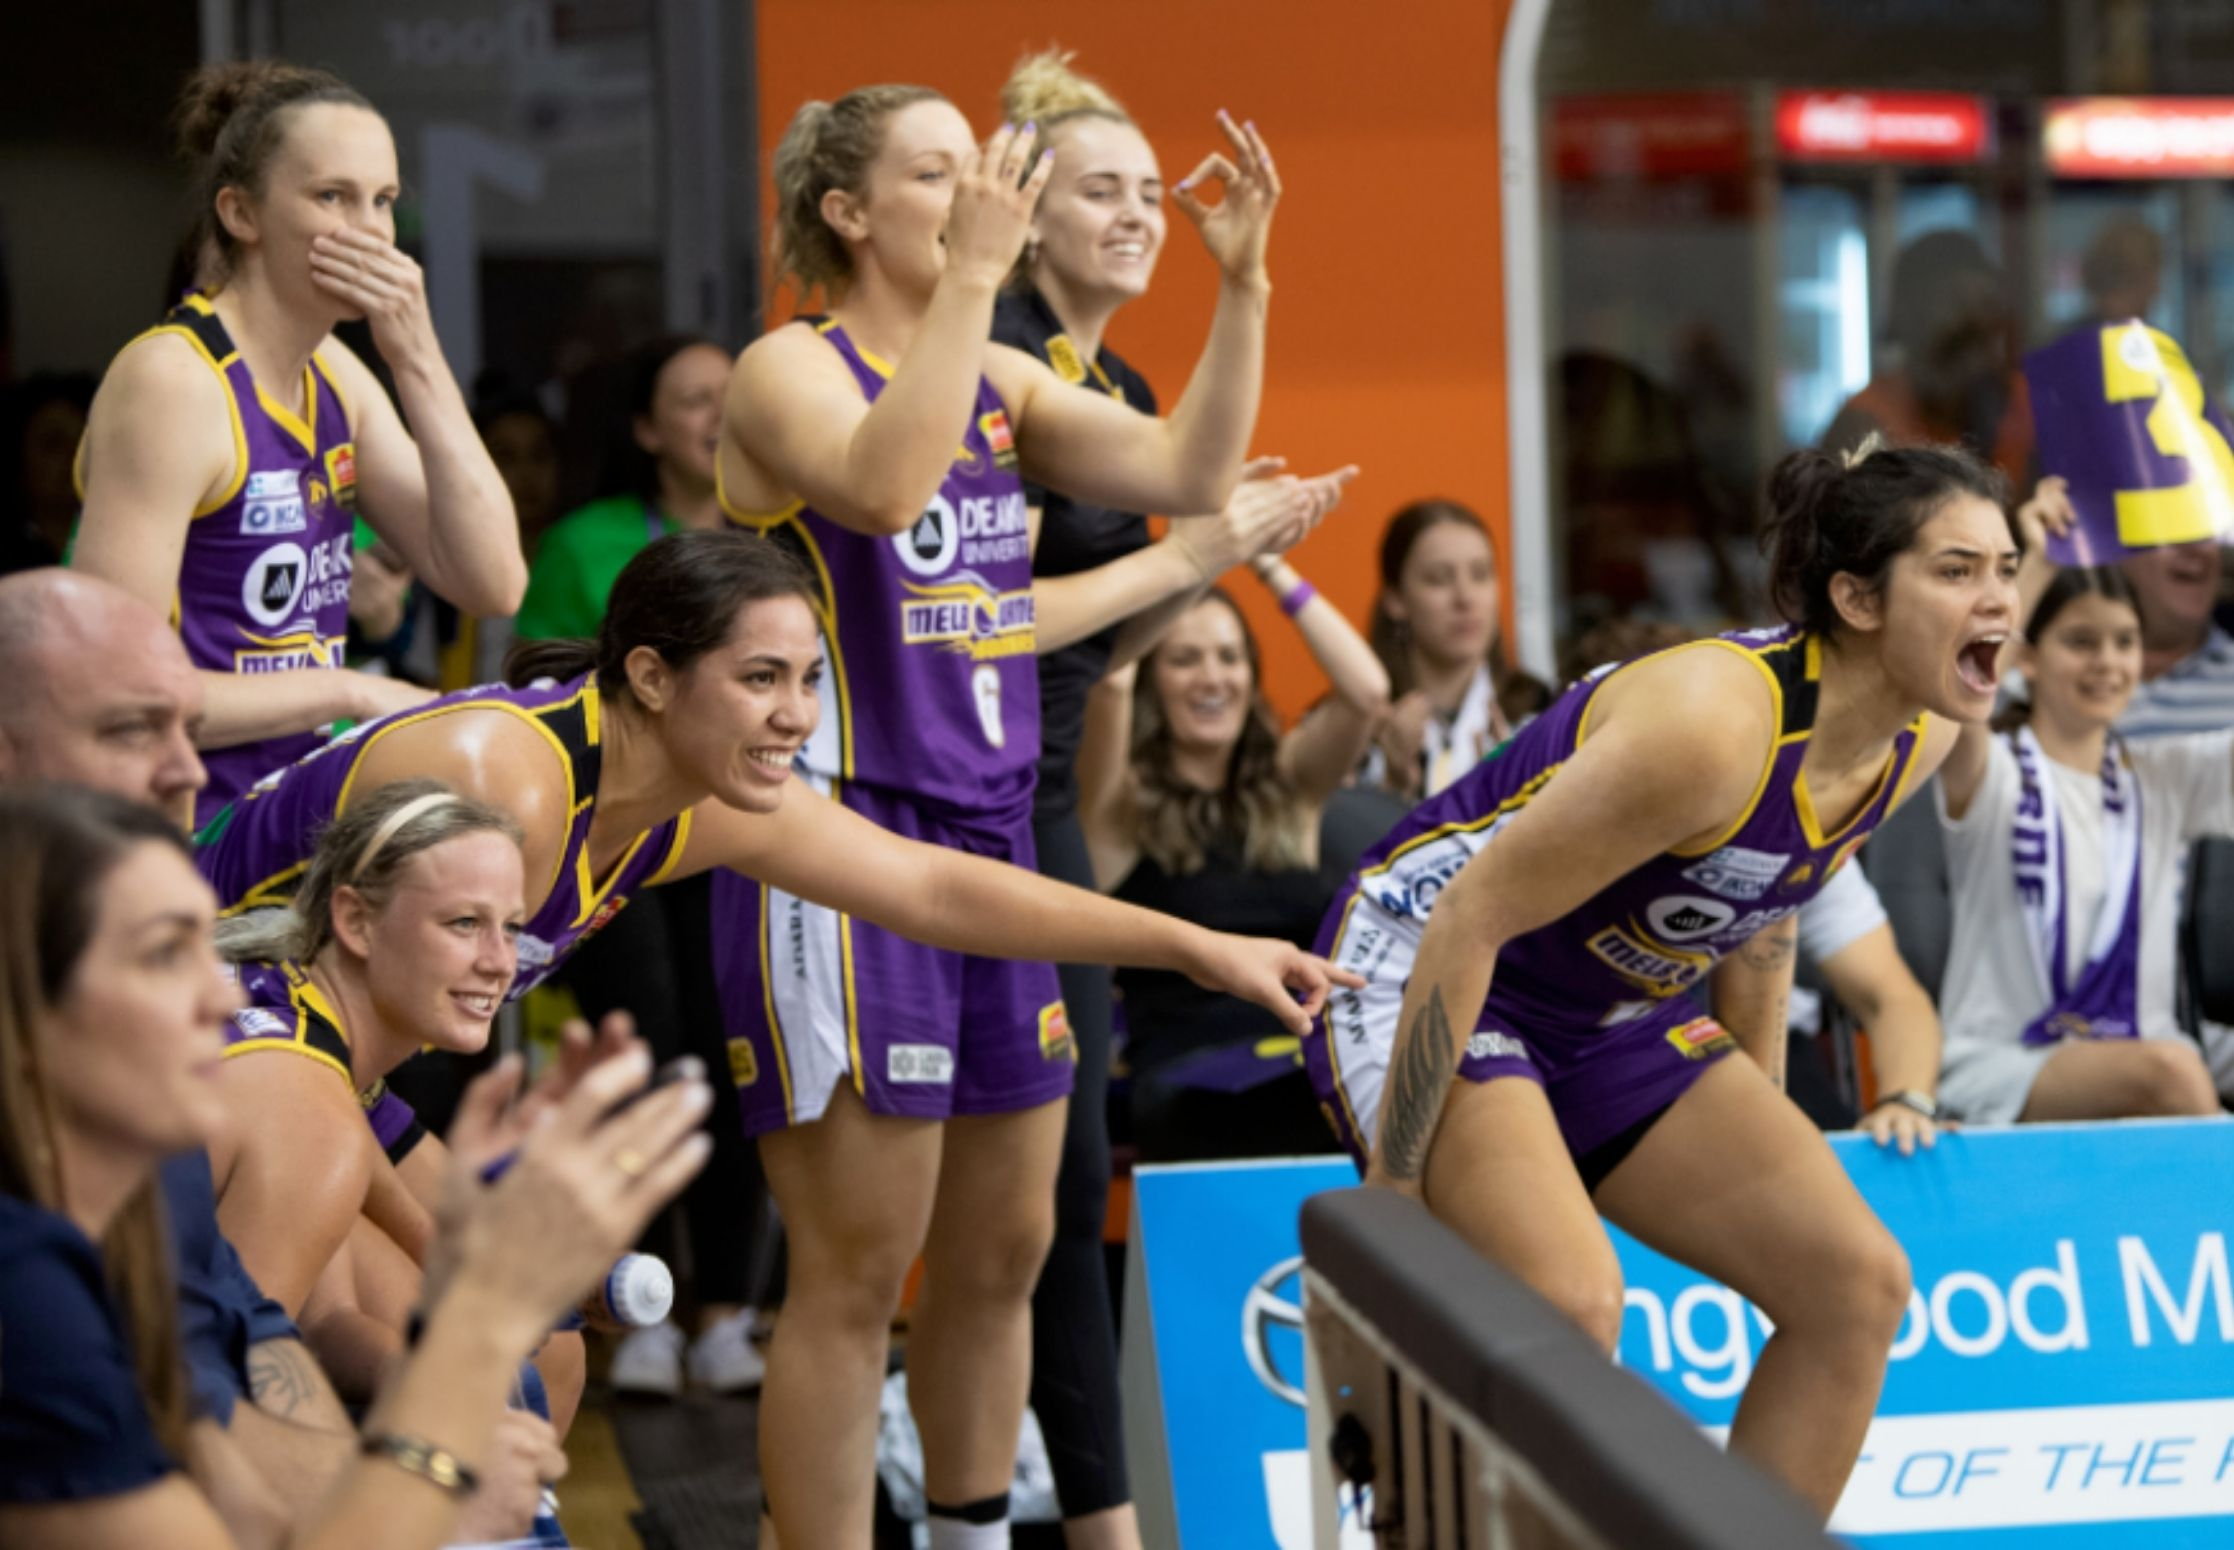 The Melbourne Boomers basketball team are one of our valued Civic partners